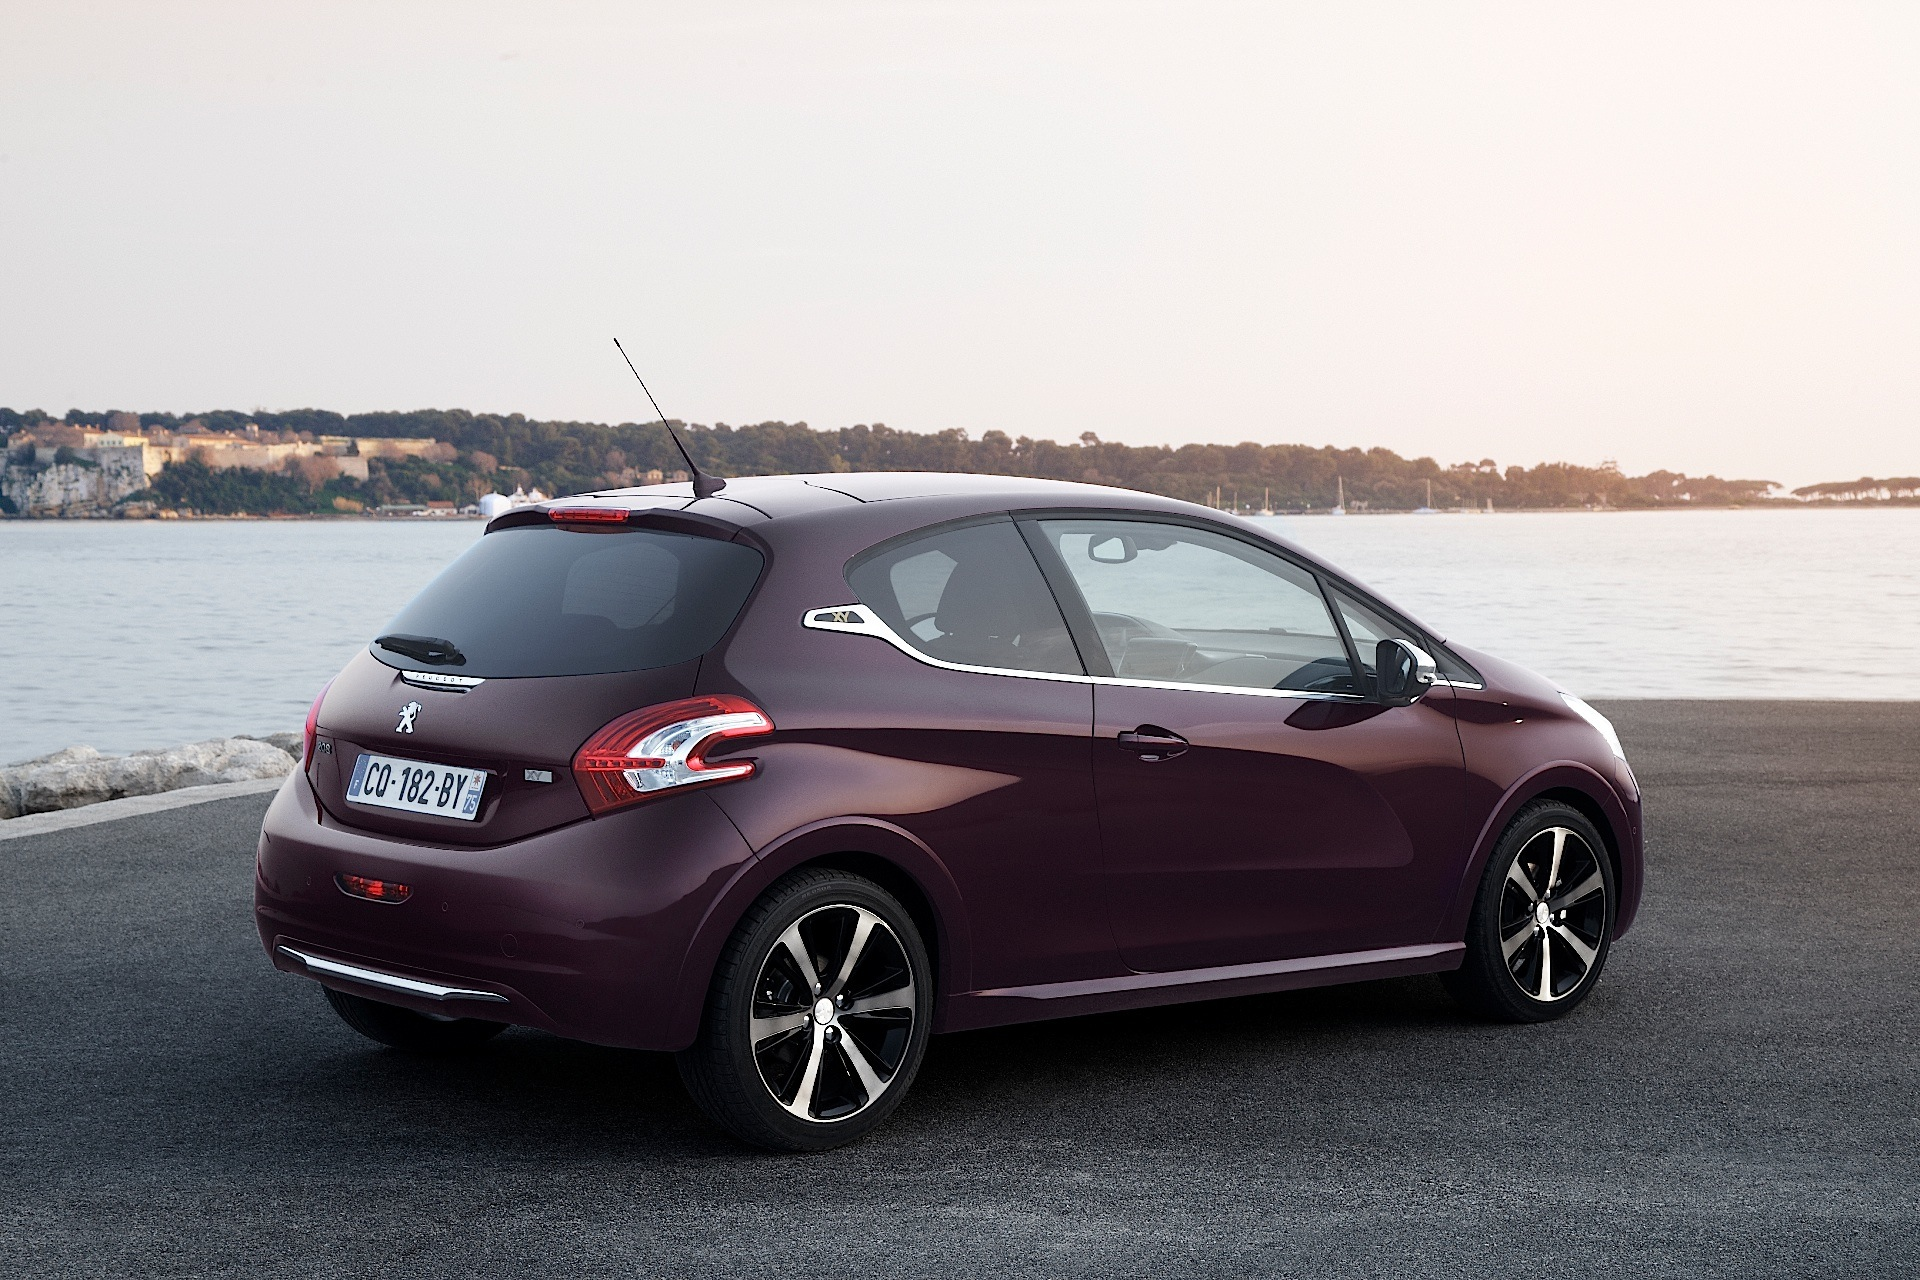 Cheap Luxury Cars >> PEUGEOT 208 XY specs - 2013, 2014, 2015, 2016, 2017, 2018 - autoevolution